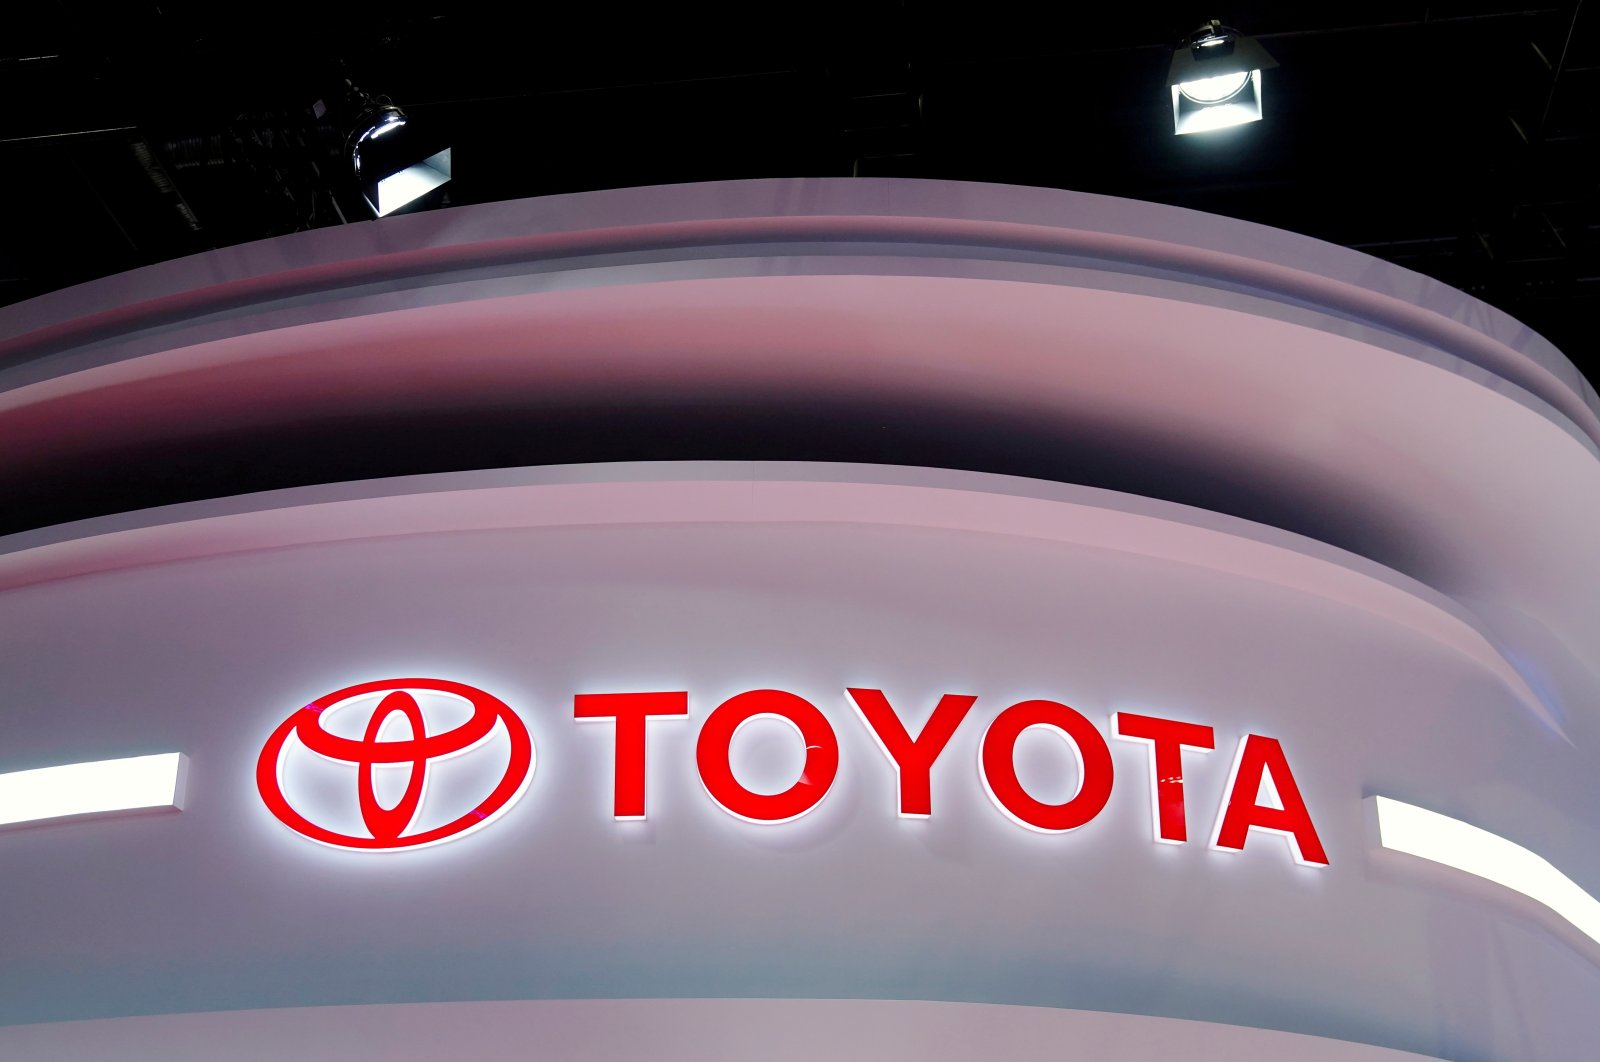 The Toyota logo is seen at a booth during a media day for the Auto Shanghai show in Shanghai, China, April 19, 2021. (reuters Photo)